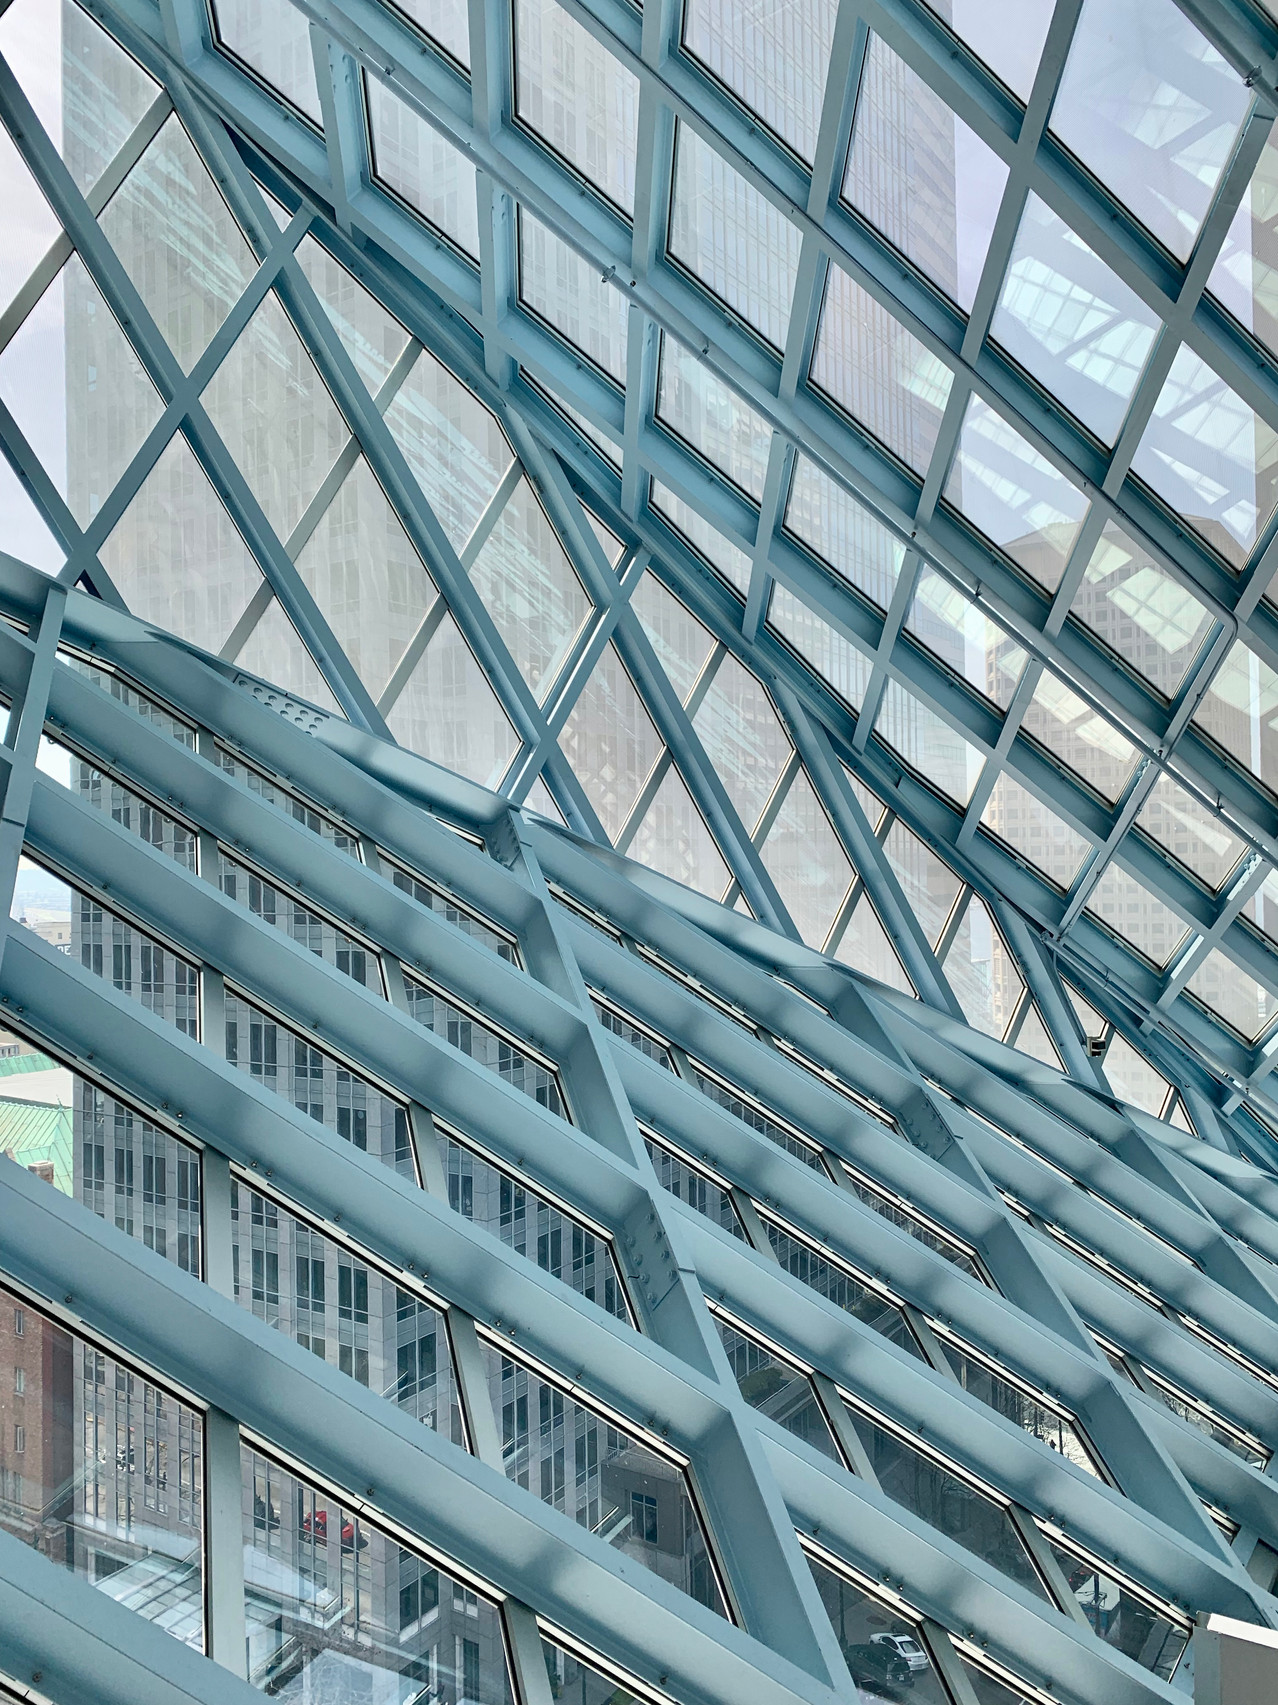 Seattle Public Library architecture